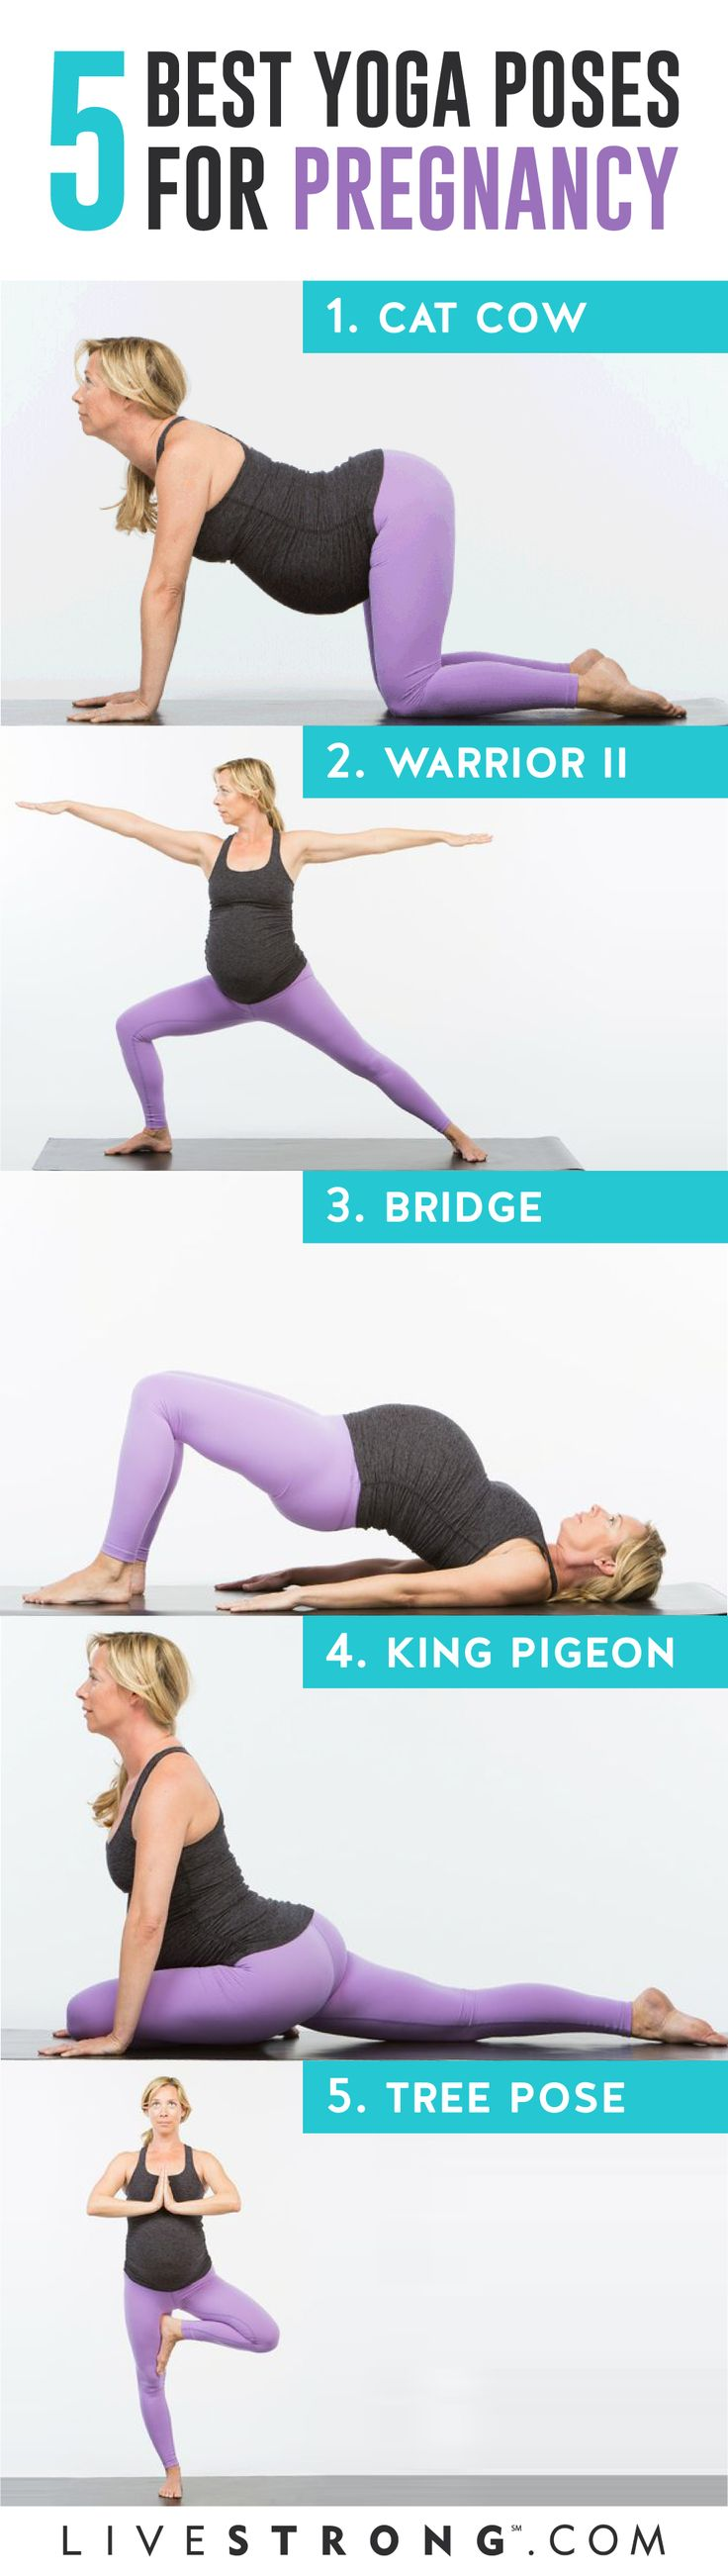 The 5 Best Yoga Poses for Pregnancy